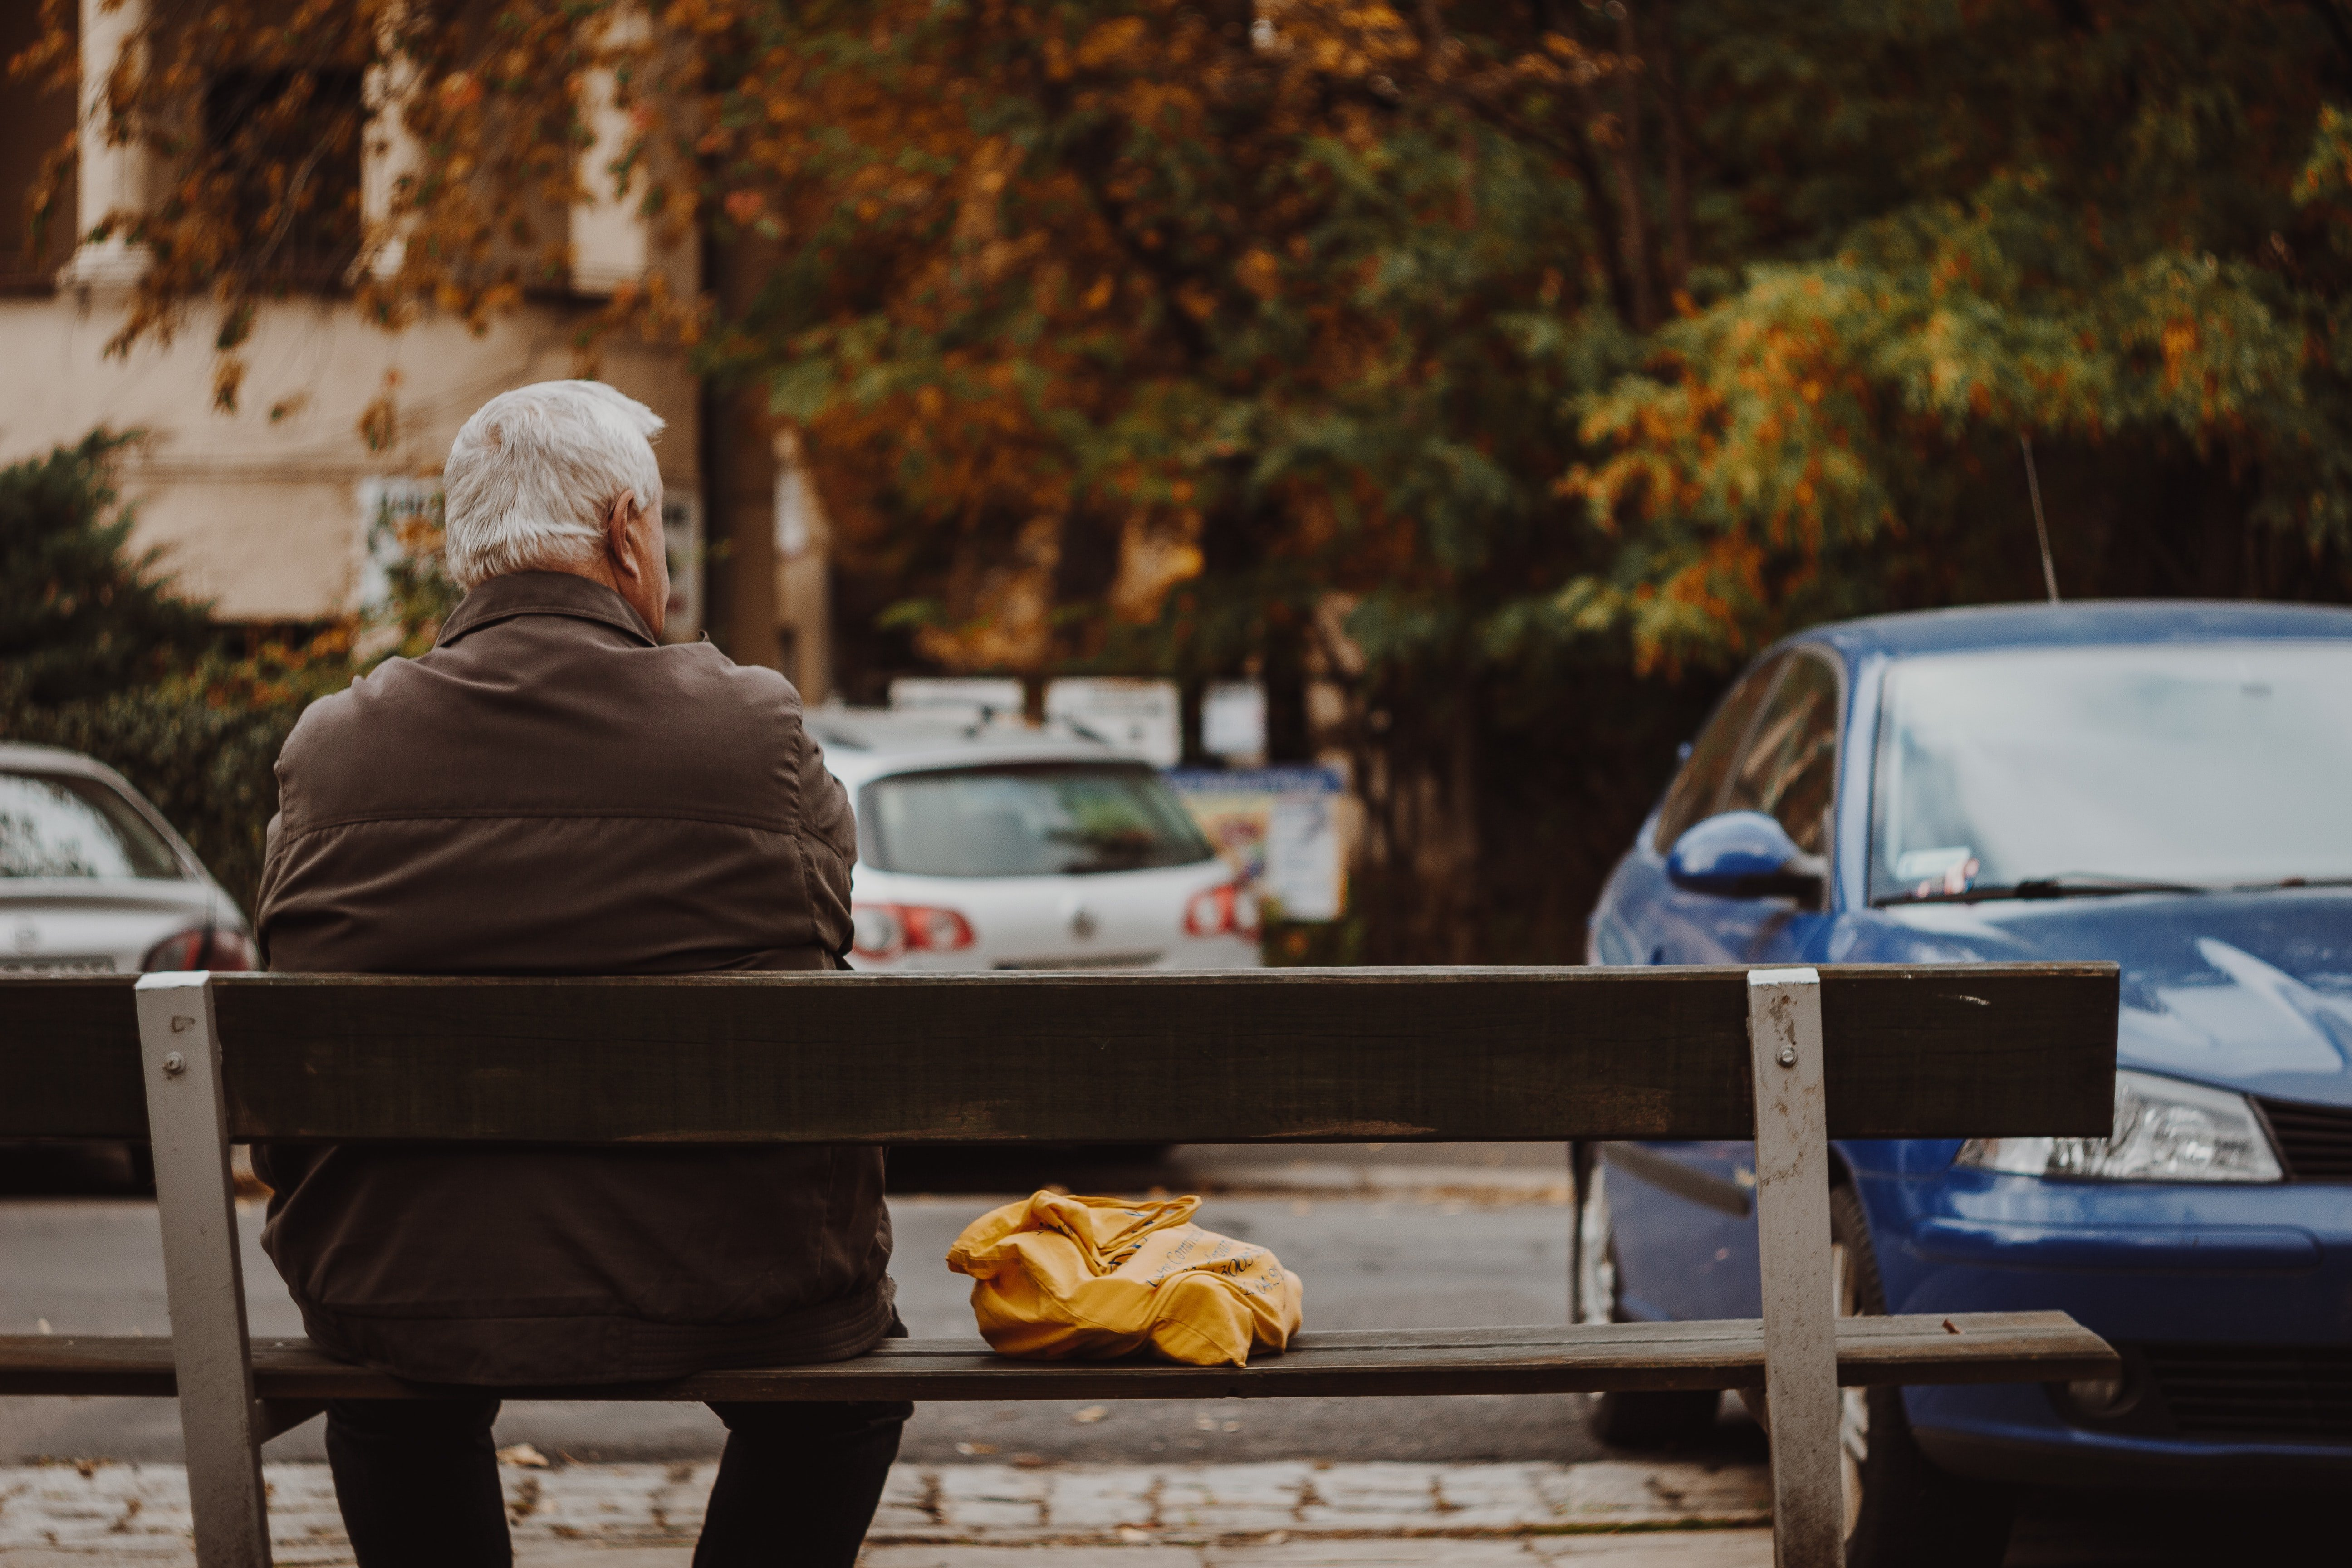 The old man taught Sam and Andy a lesson and left | Photo: Unsplash